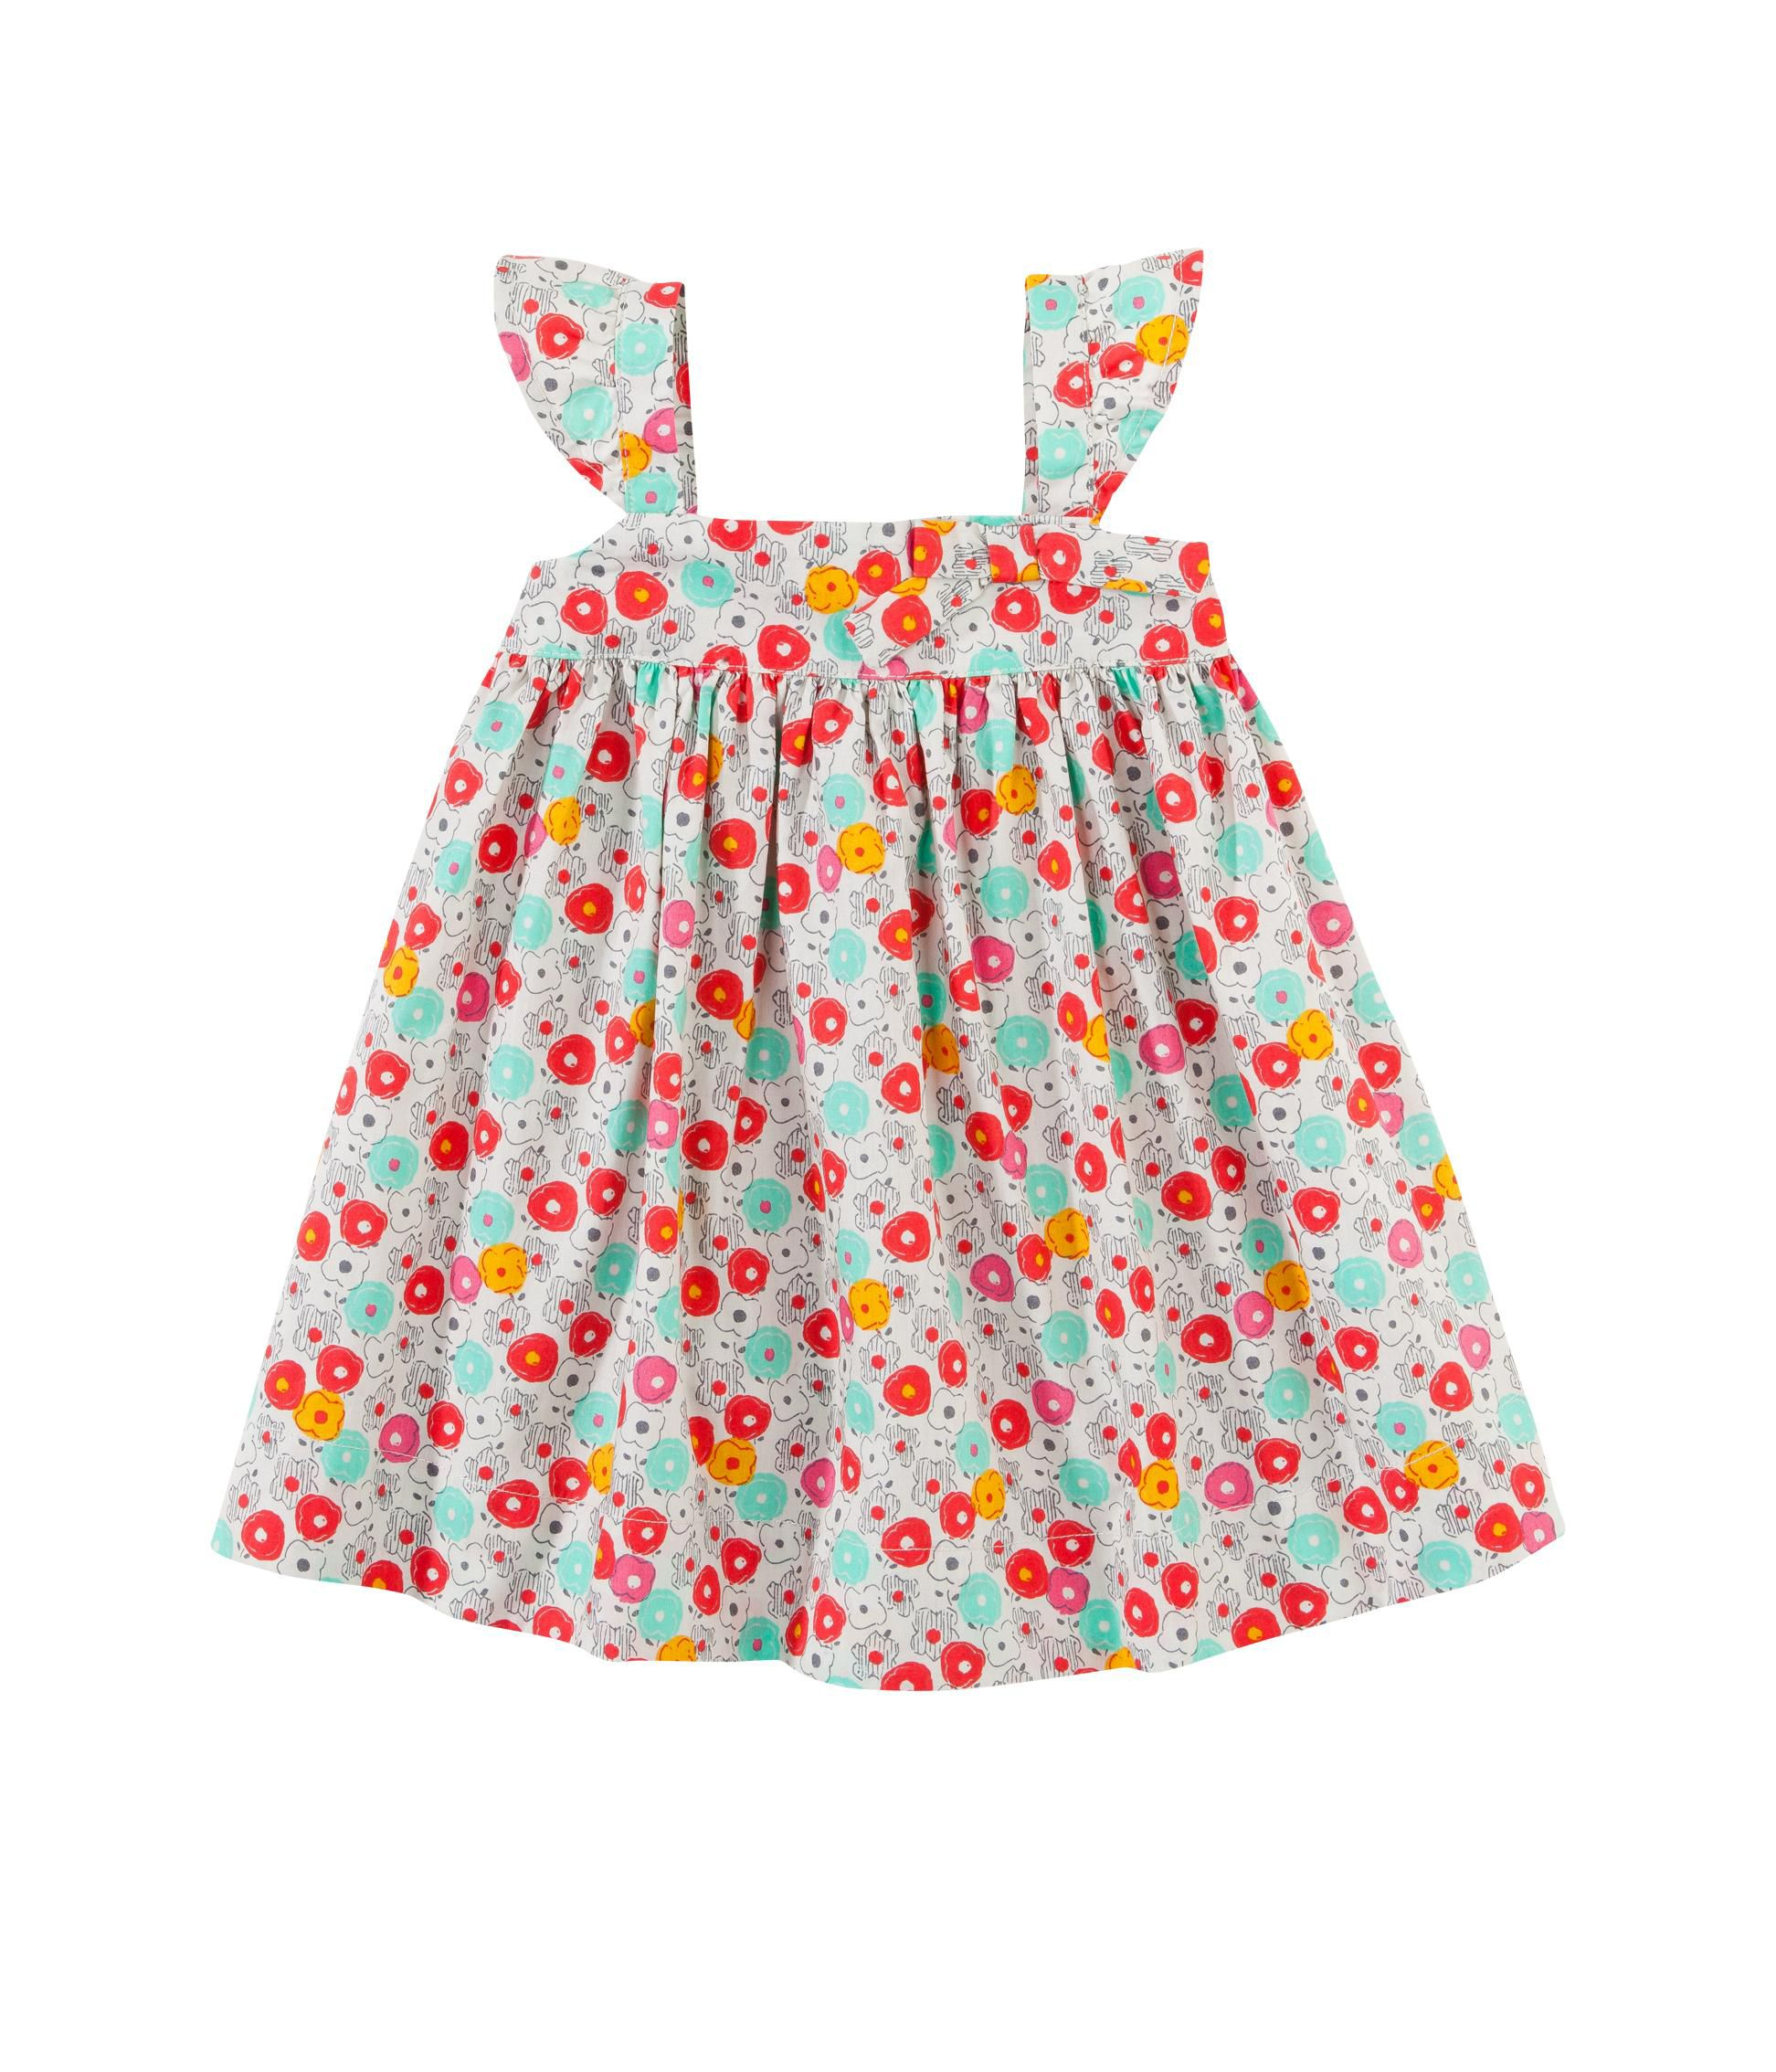 Baby girl floral flared dress